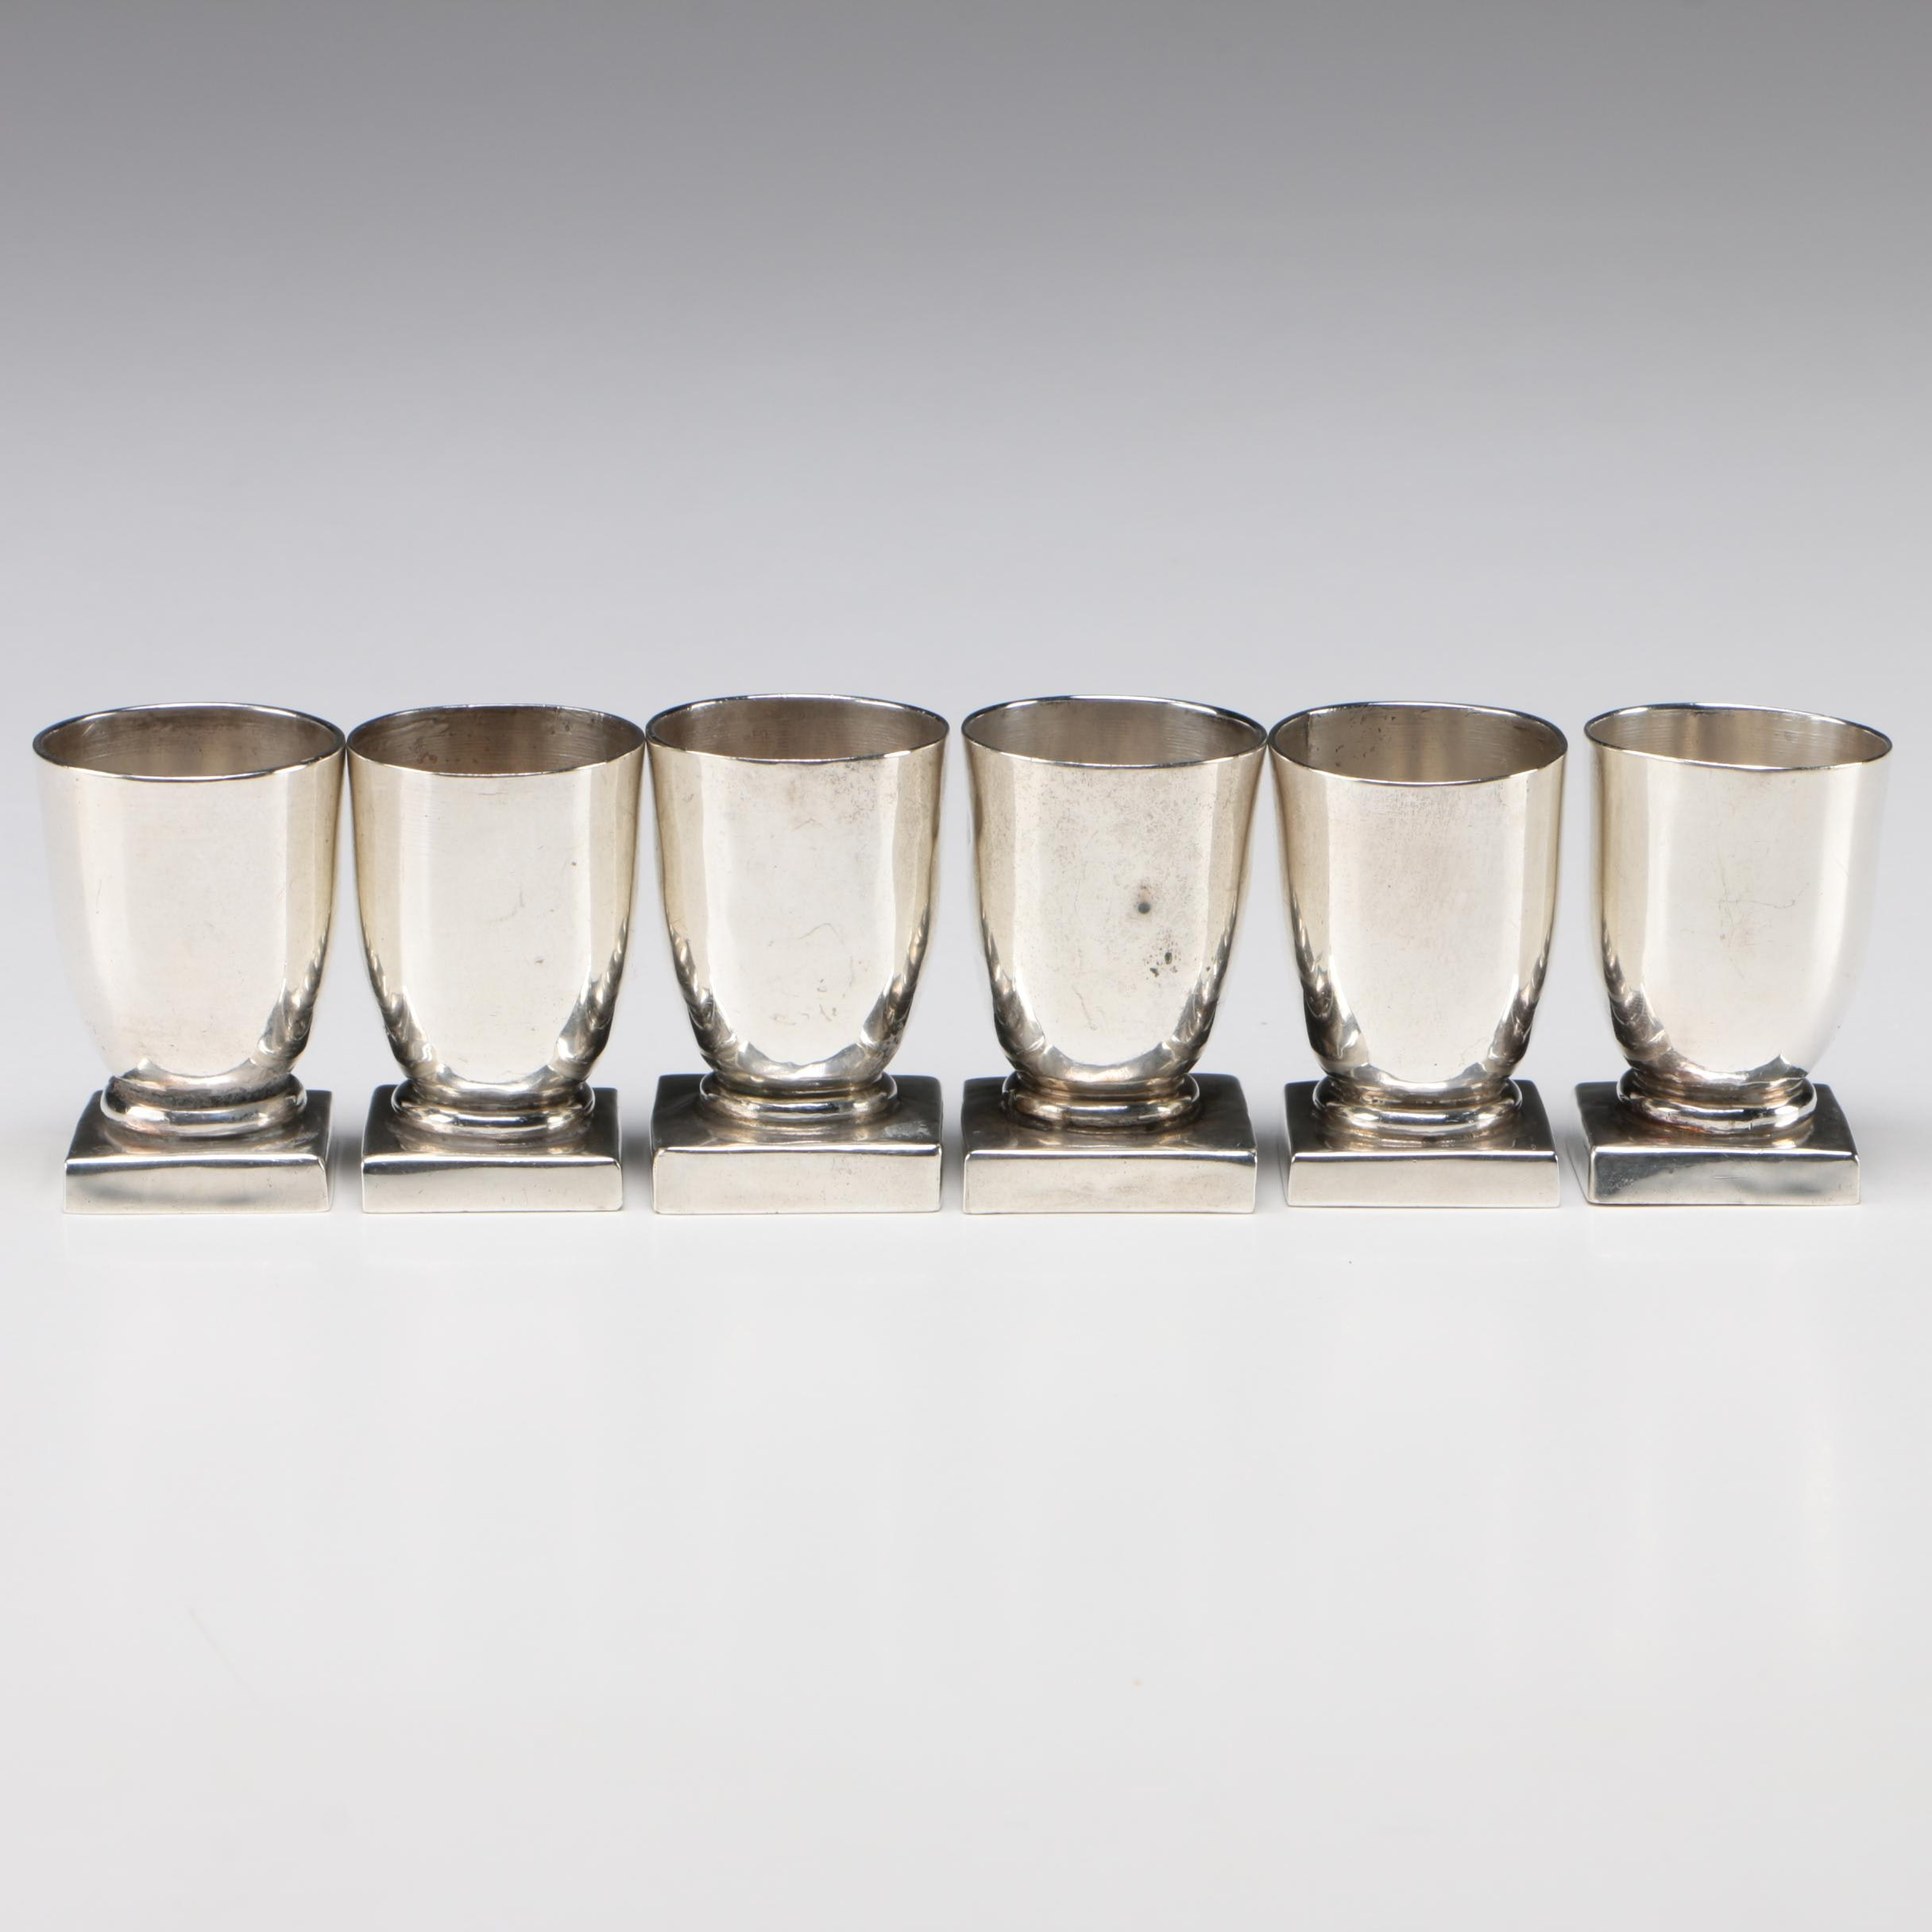 Mexican 20th Century William Spratling Sterling Silver Cordials, Set of Six